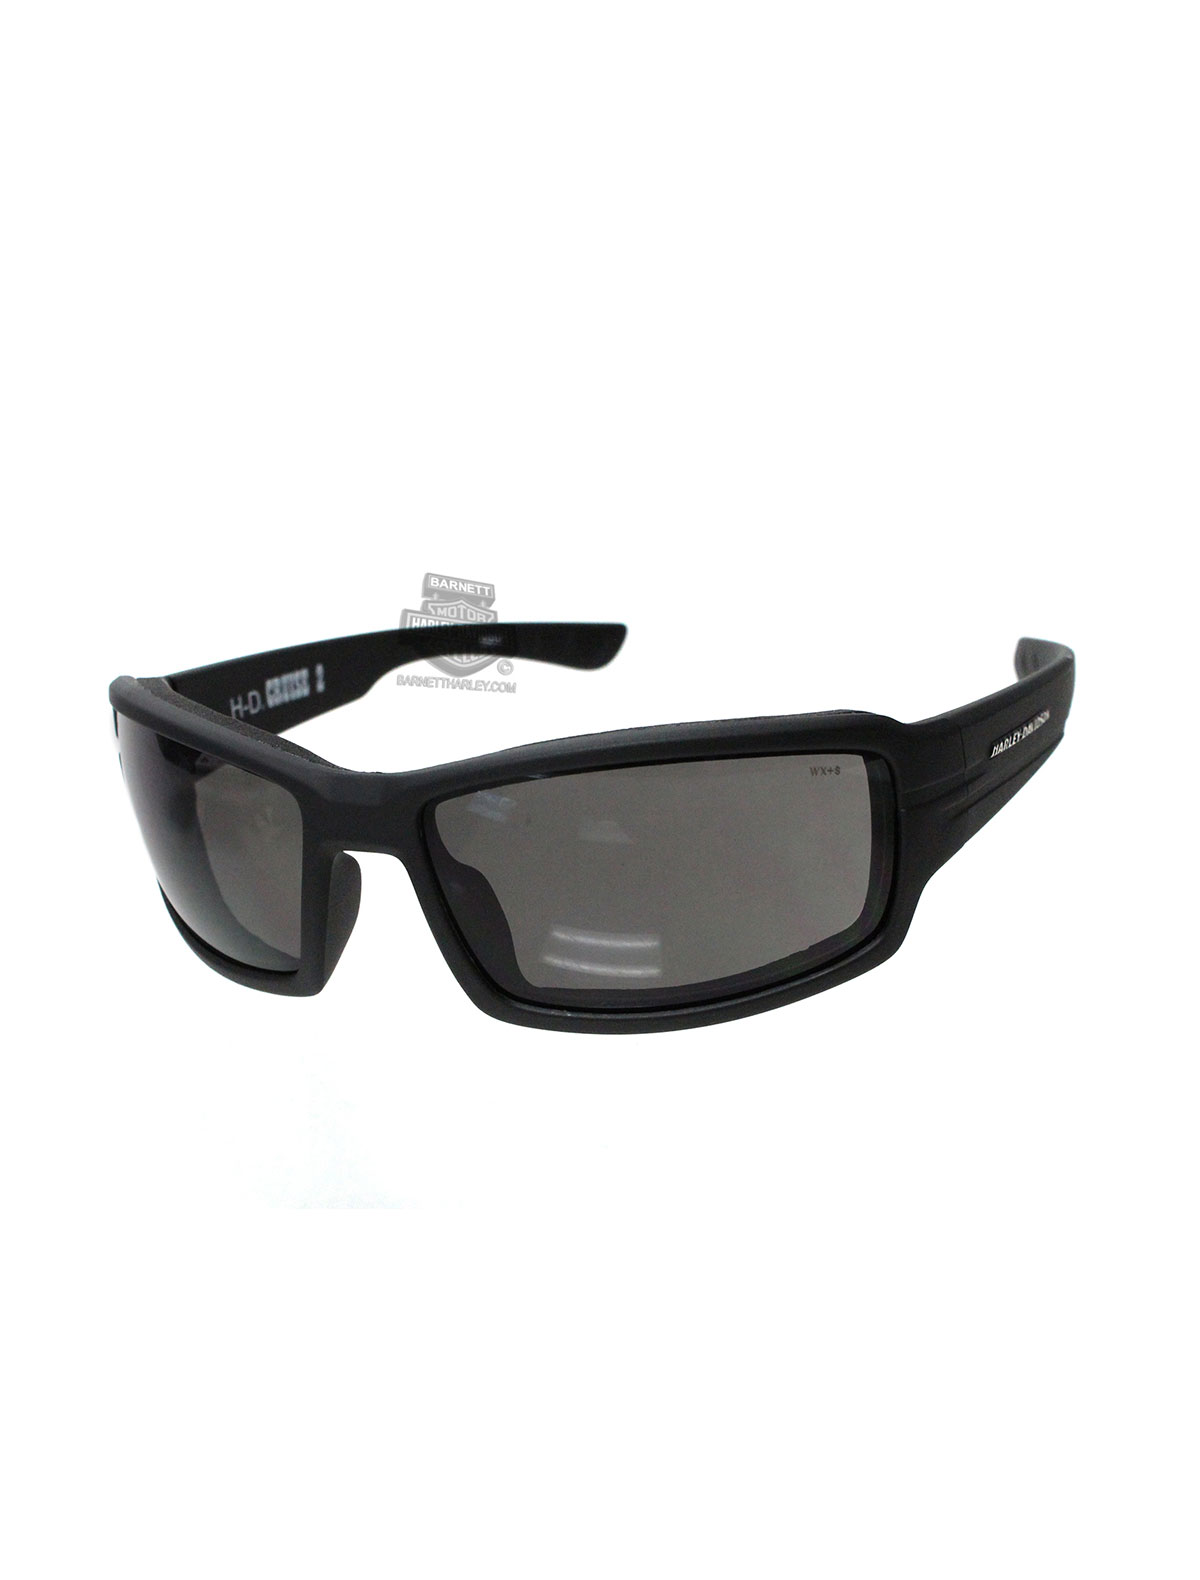 Harley-Davidson® HD Cruise 2 Smoke Grey Lens in a Matte Black Frame Sunglasses by Wiley X®